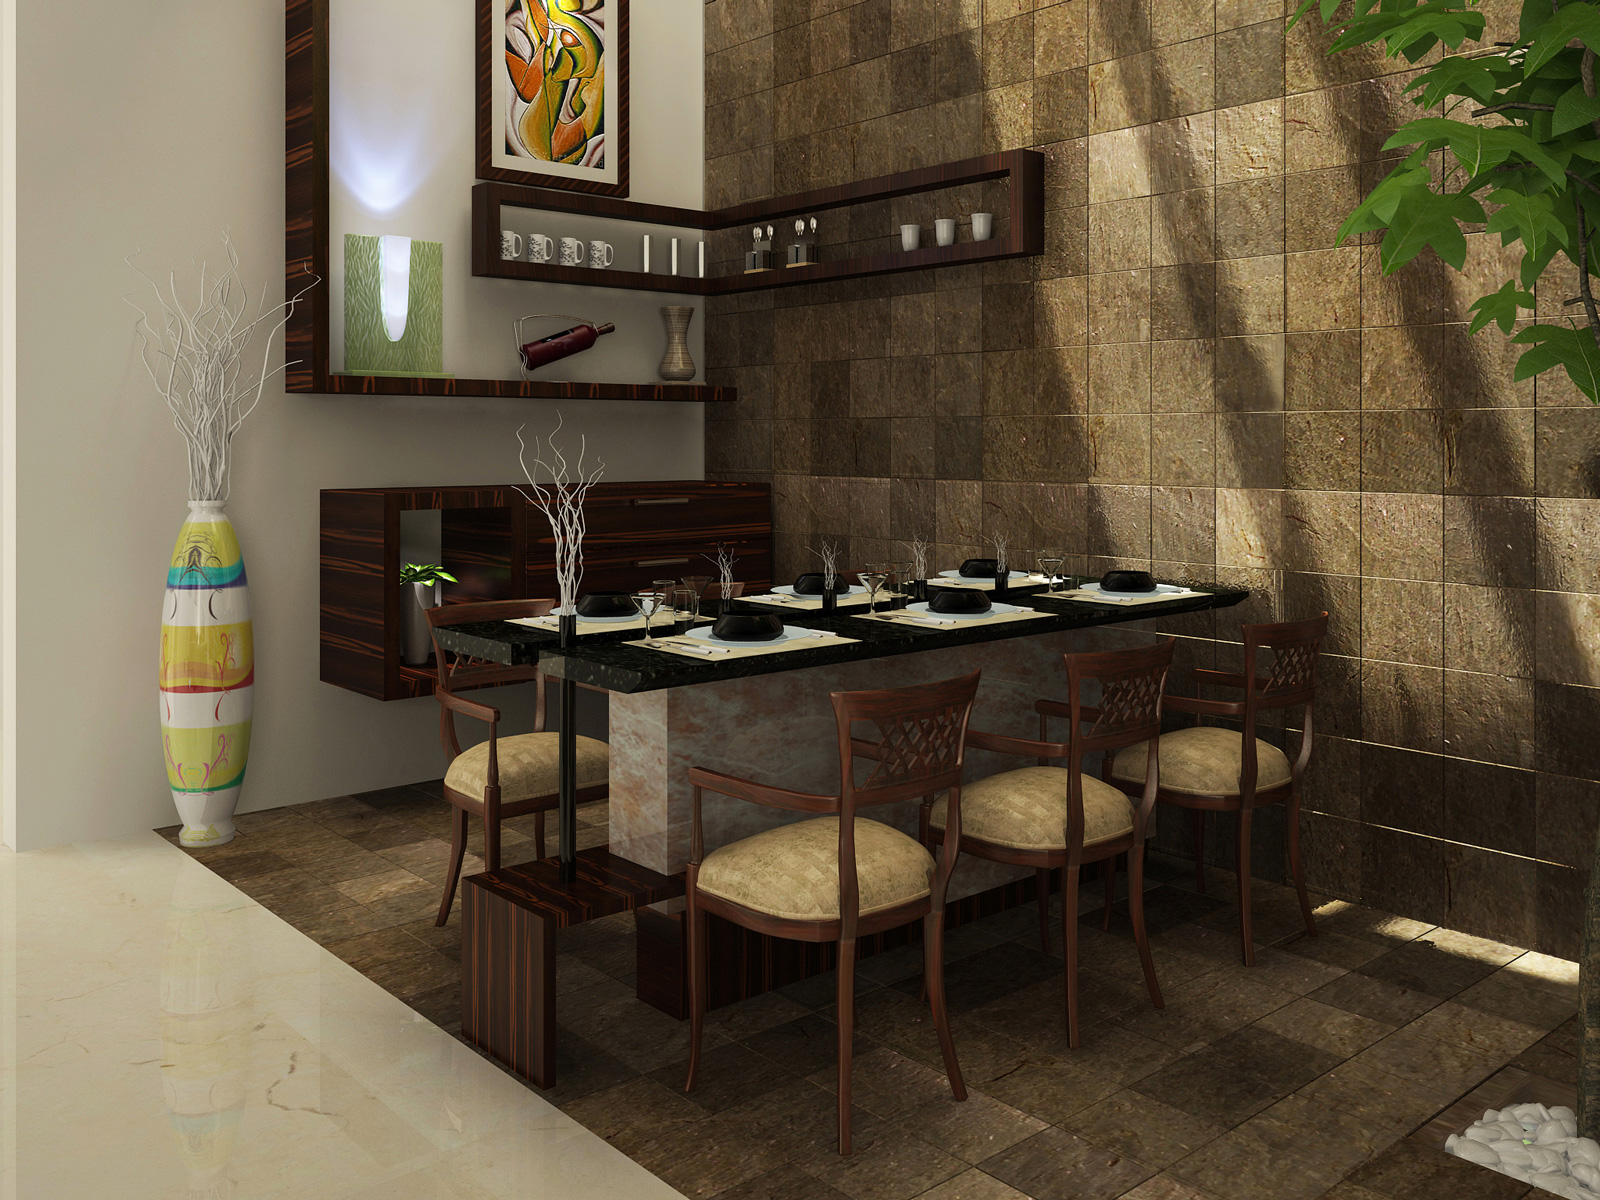 Kerala dining room design style photos home interior in india for Dining hall design ideas